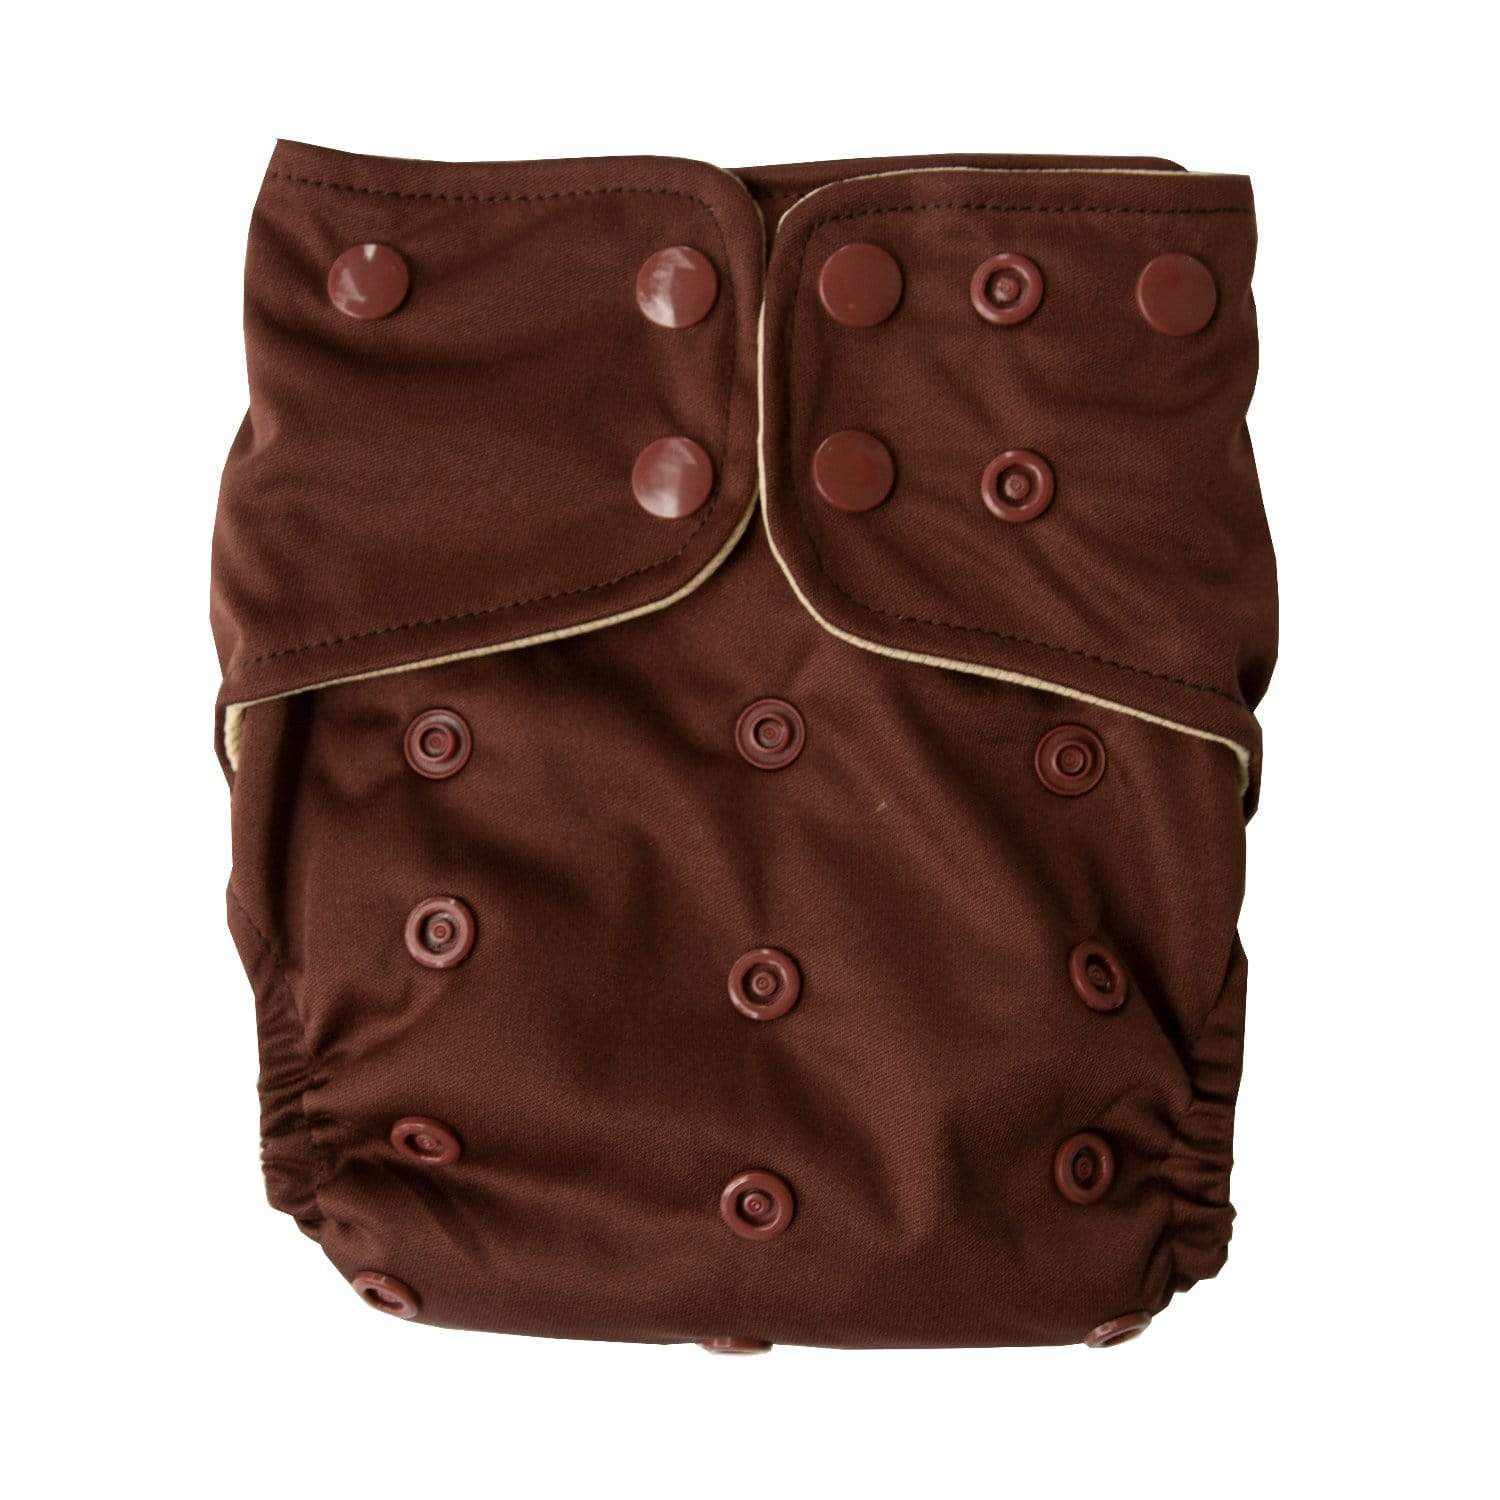 Lighthouse Kid's Company Signature All In One Diaper - Cocoa